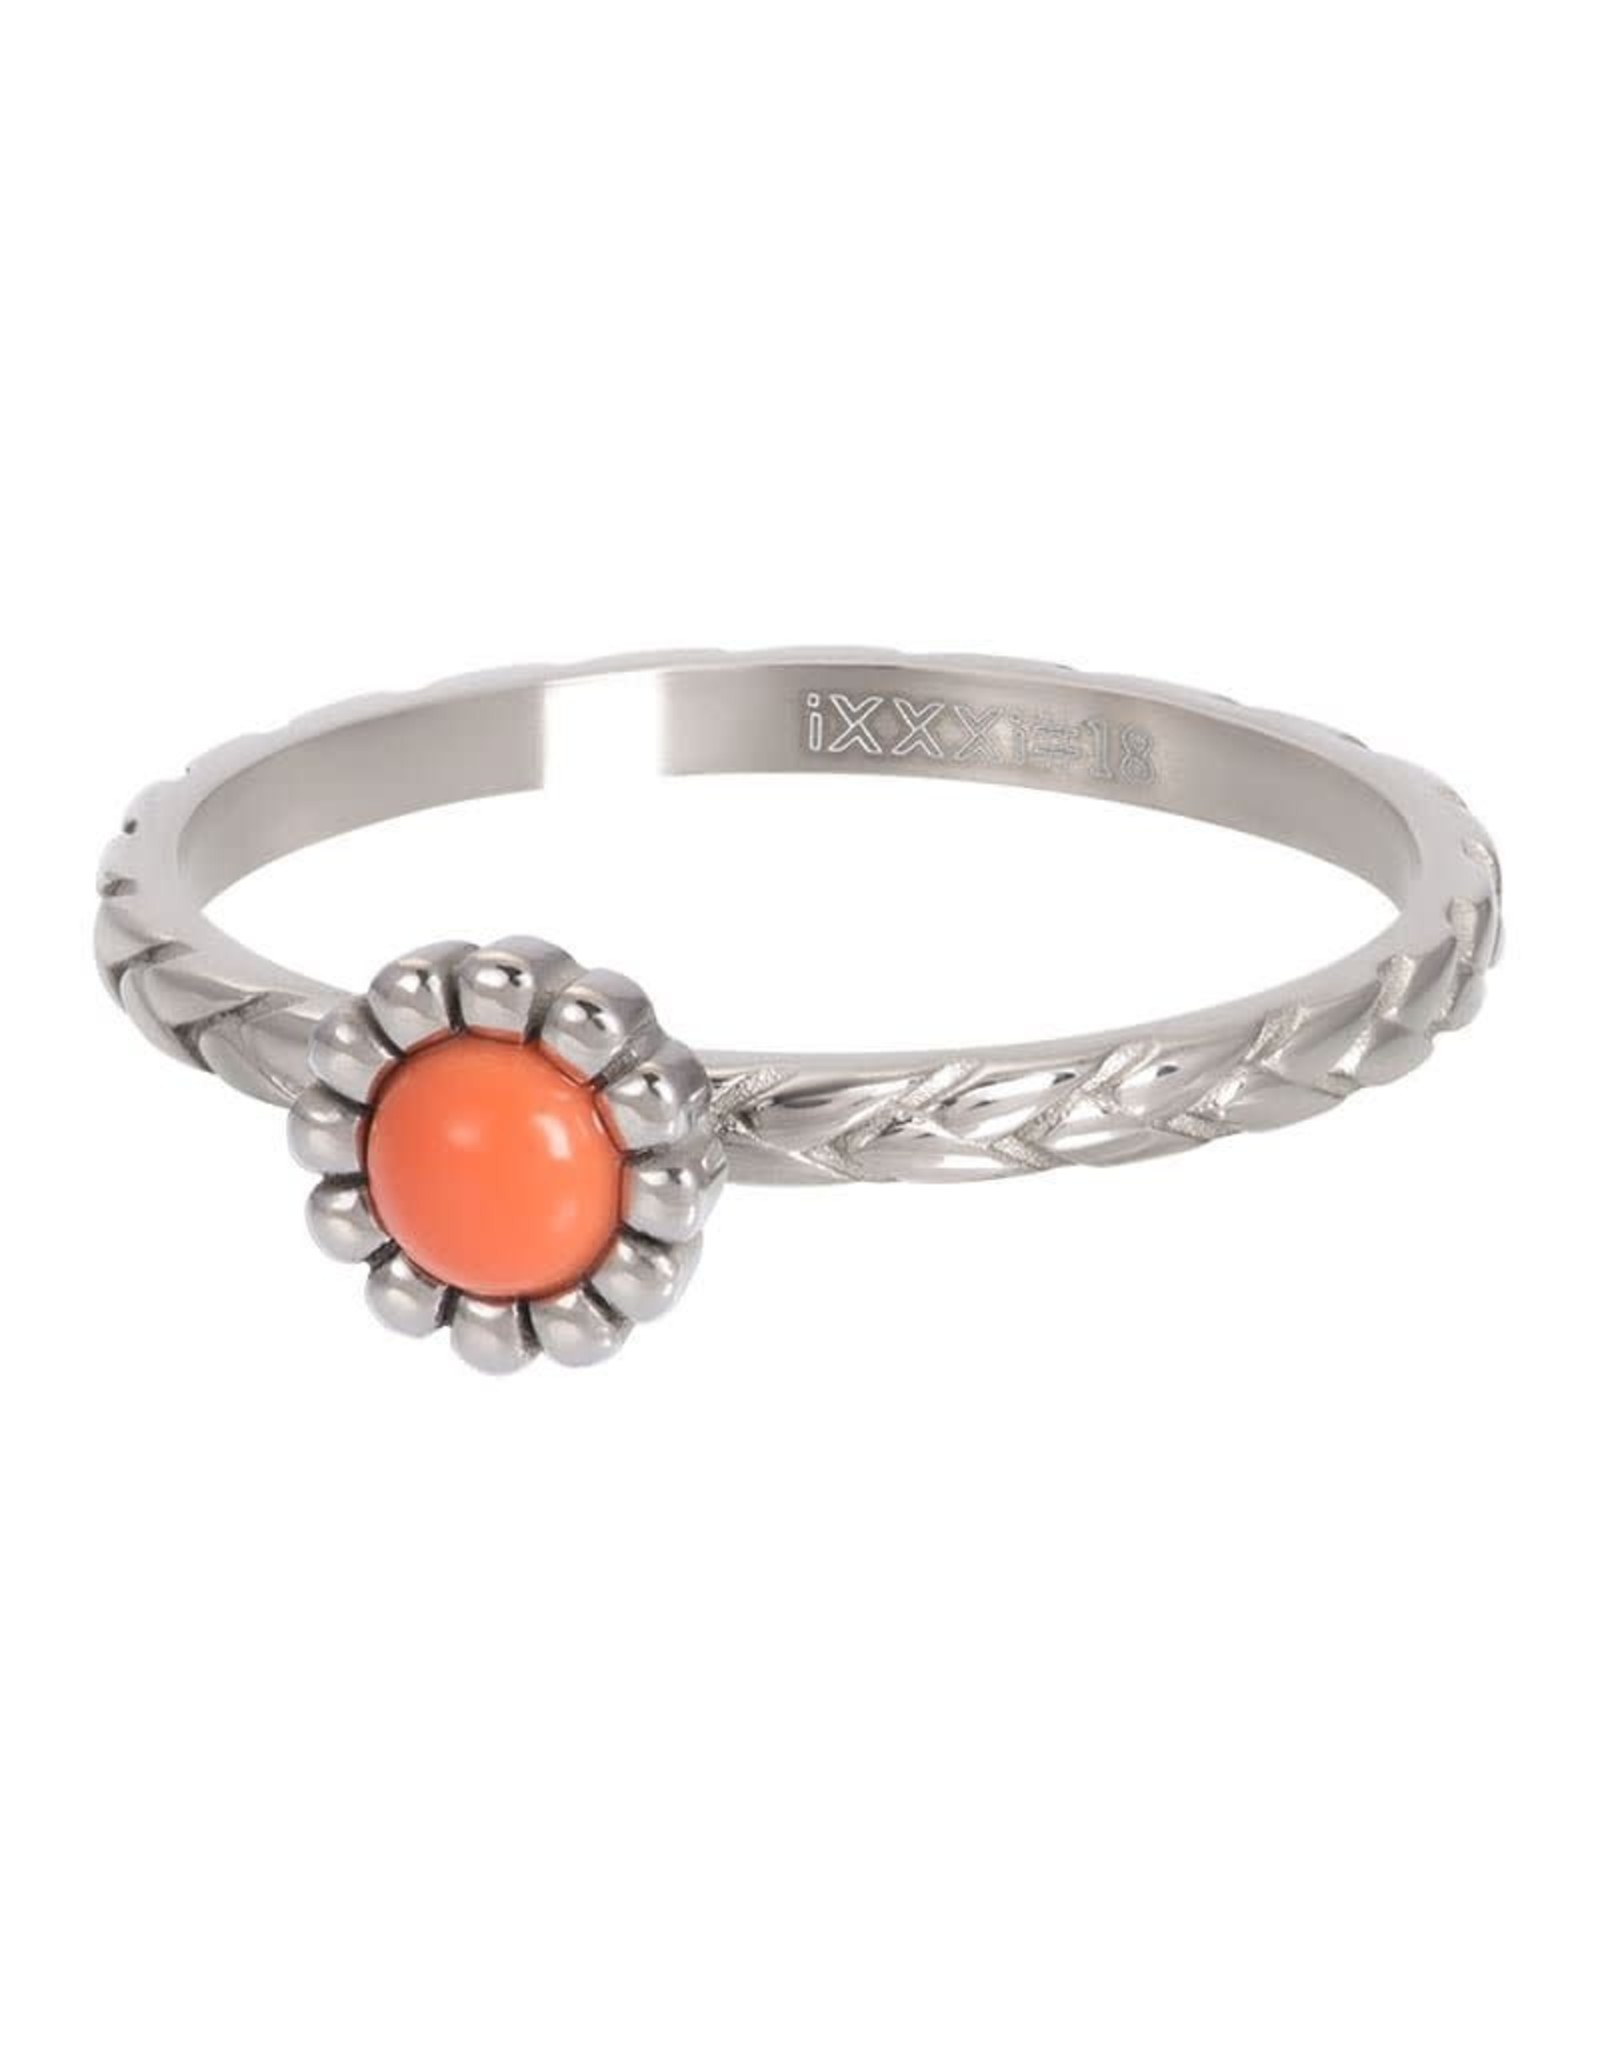 iXXXi Jewelry iXXXi vulring inspired coral - staal